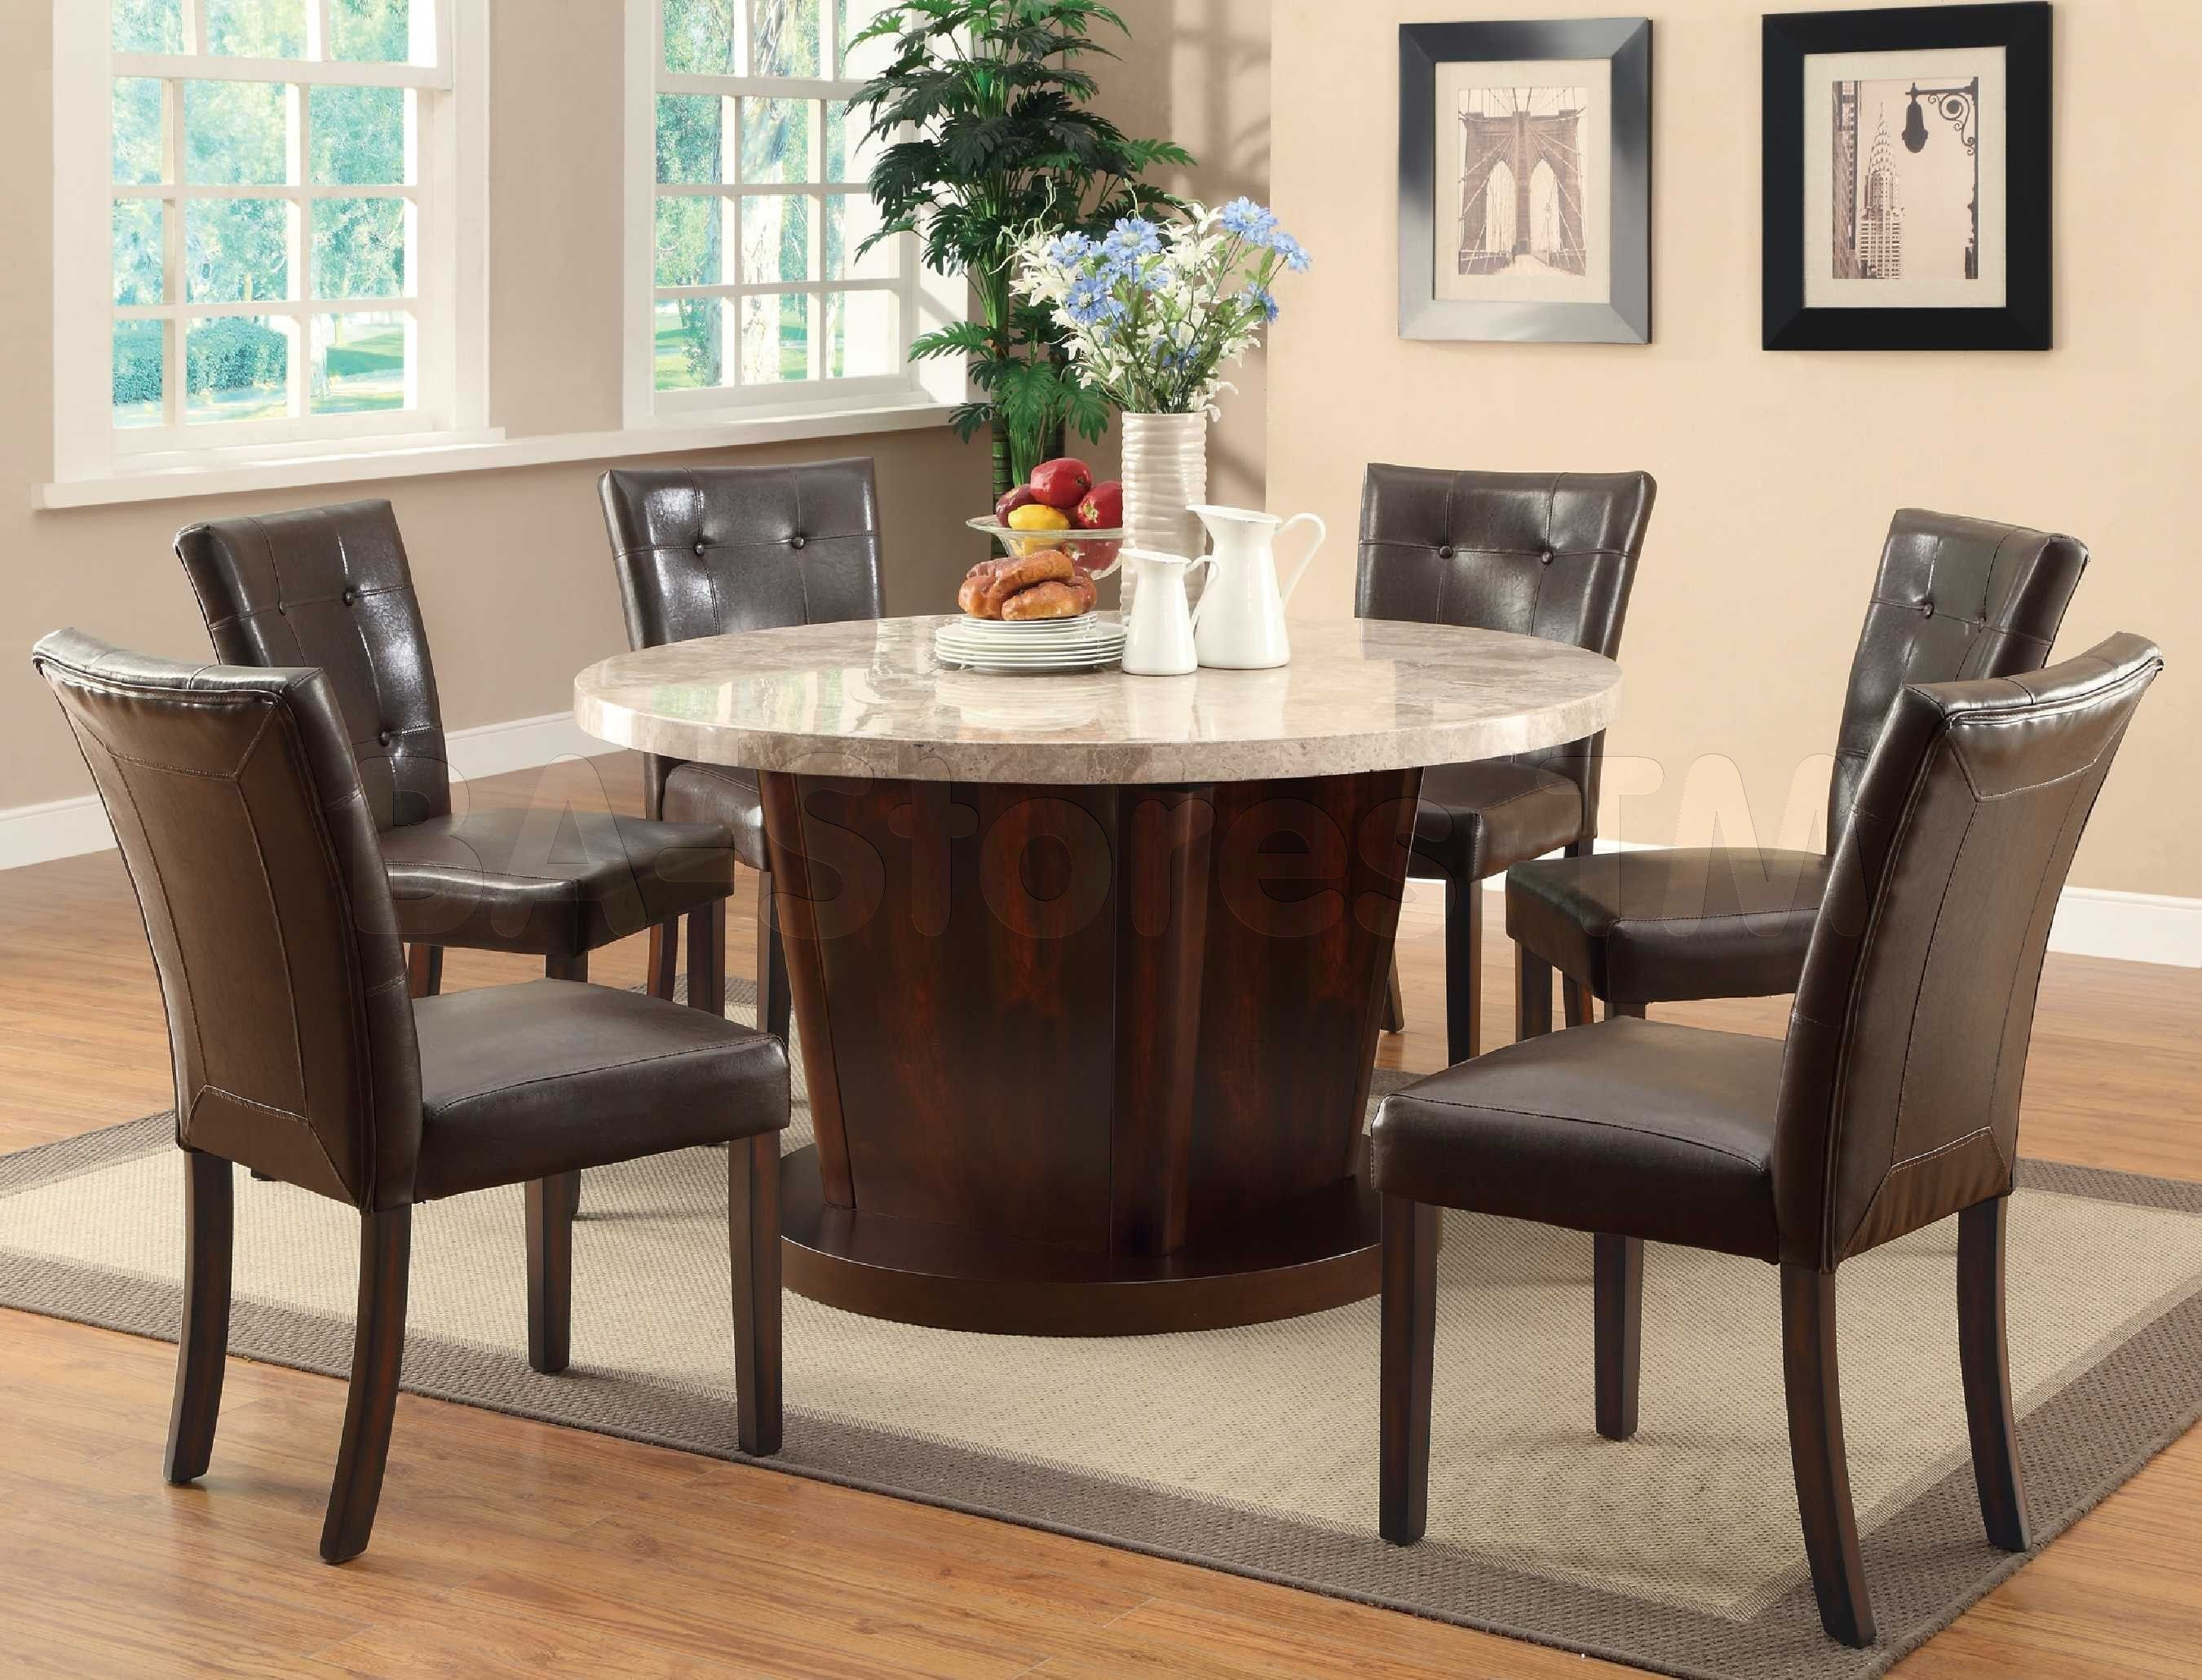 Industrial Round Table Dining Room Sets  Bedrooms  Pinterest Enchanting 8 Pc Dining Room Set Review